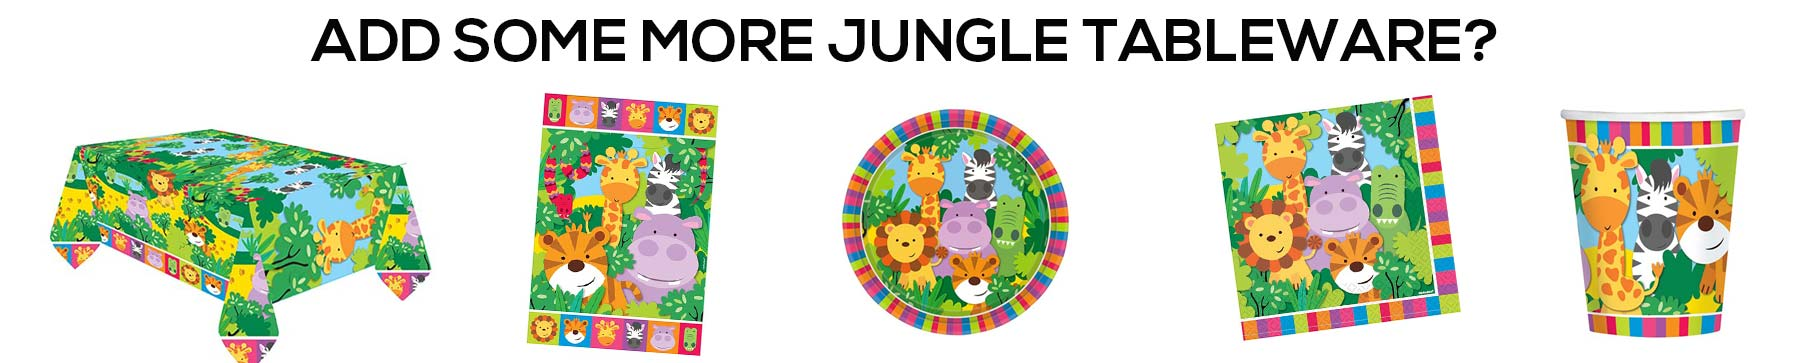 kids jungle safari birthday tableware